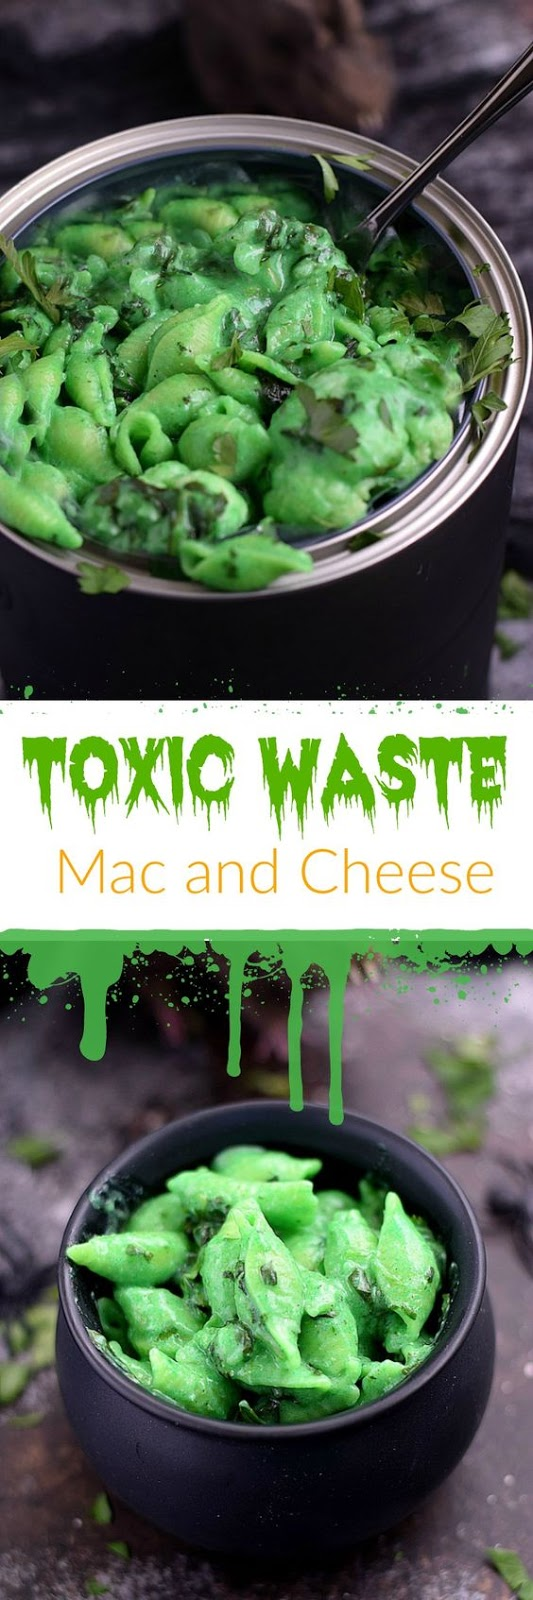 Toxic Waste Mac and Cheese